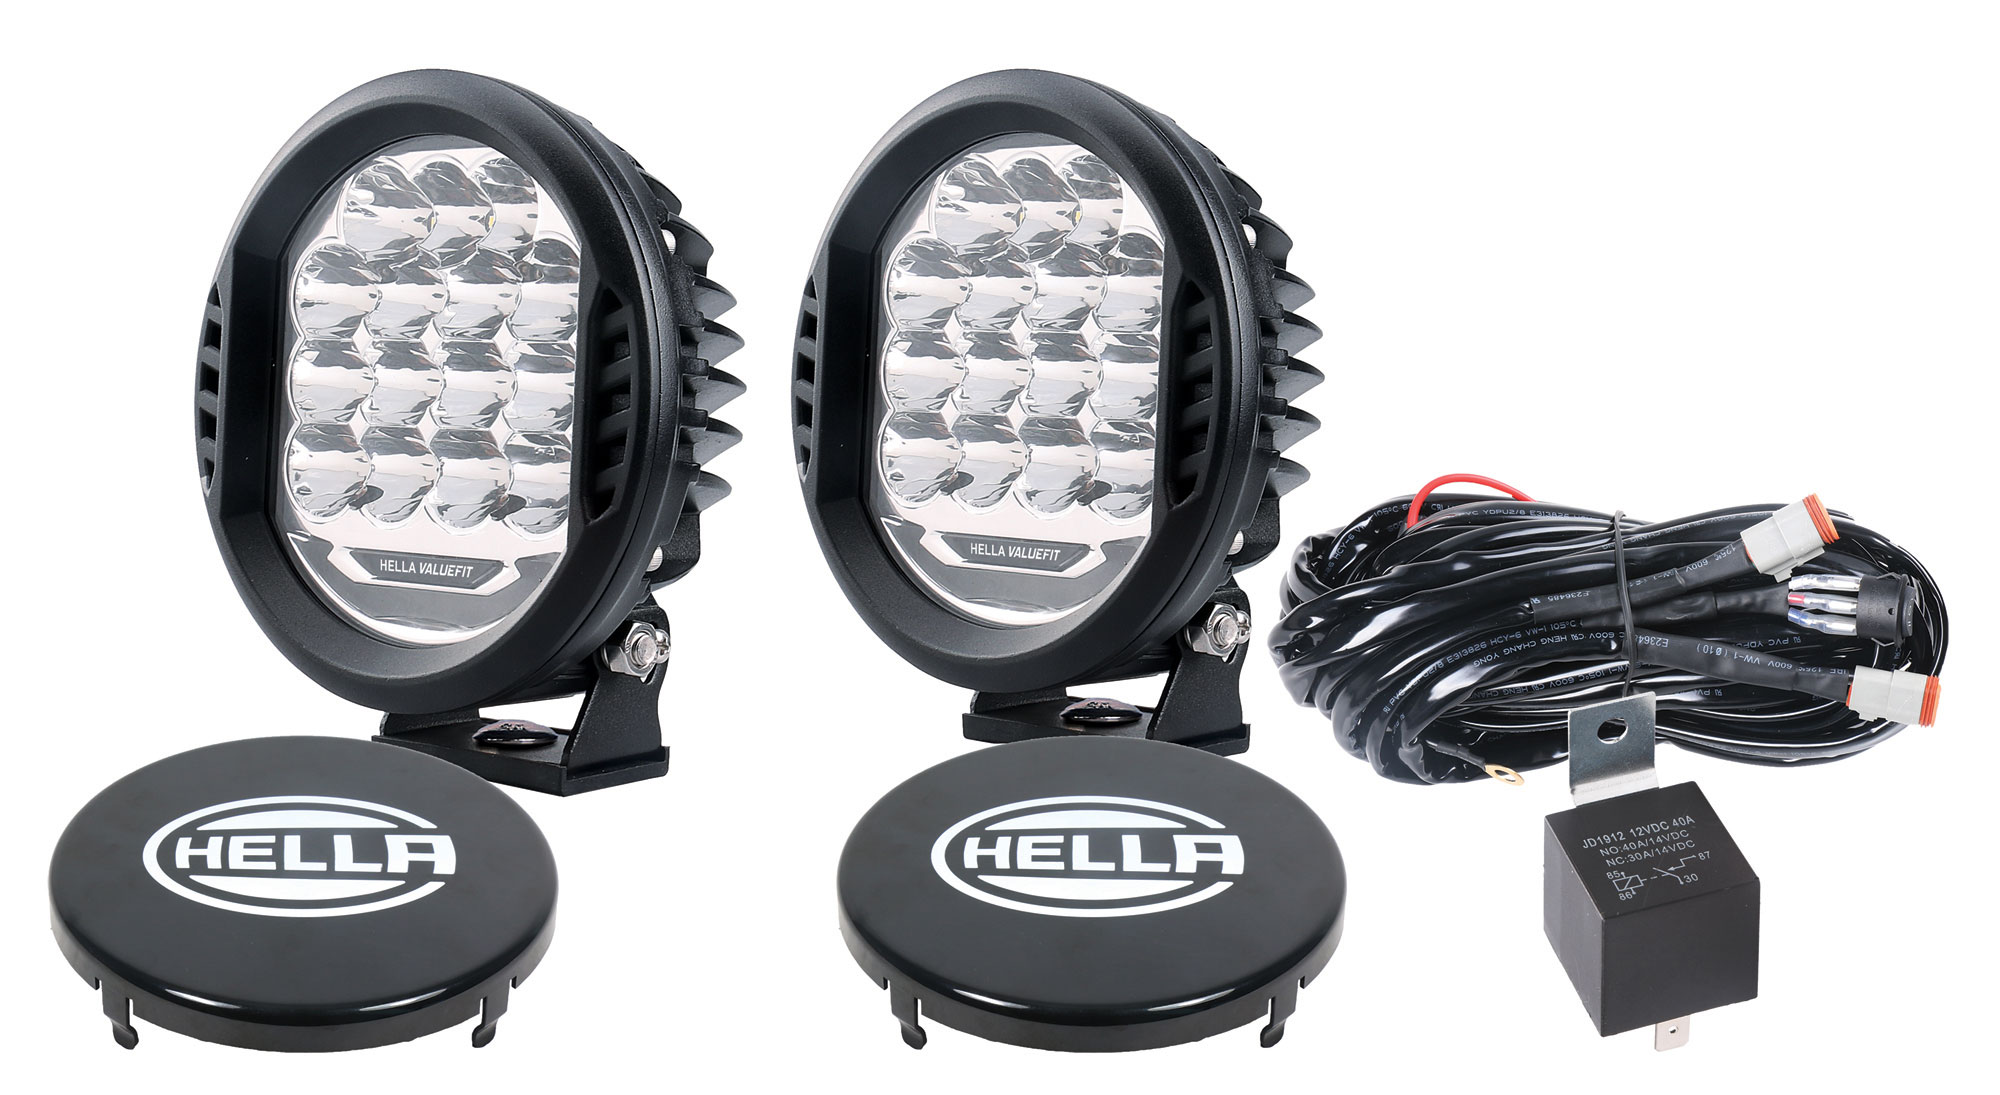 Hella ValueFit 500 LED - Driving Light, Kit